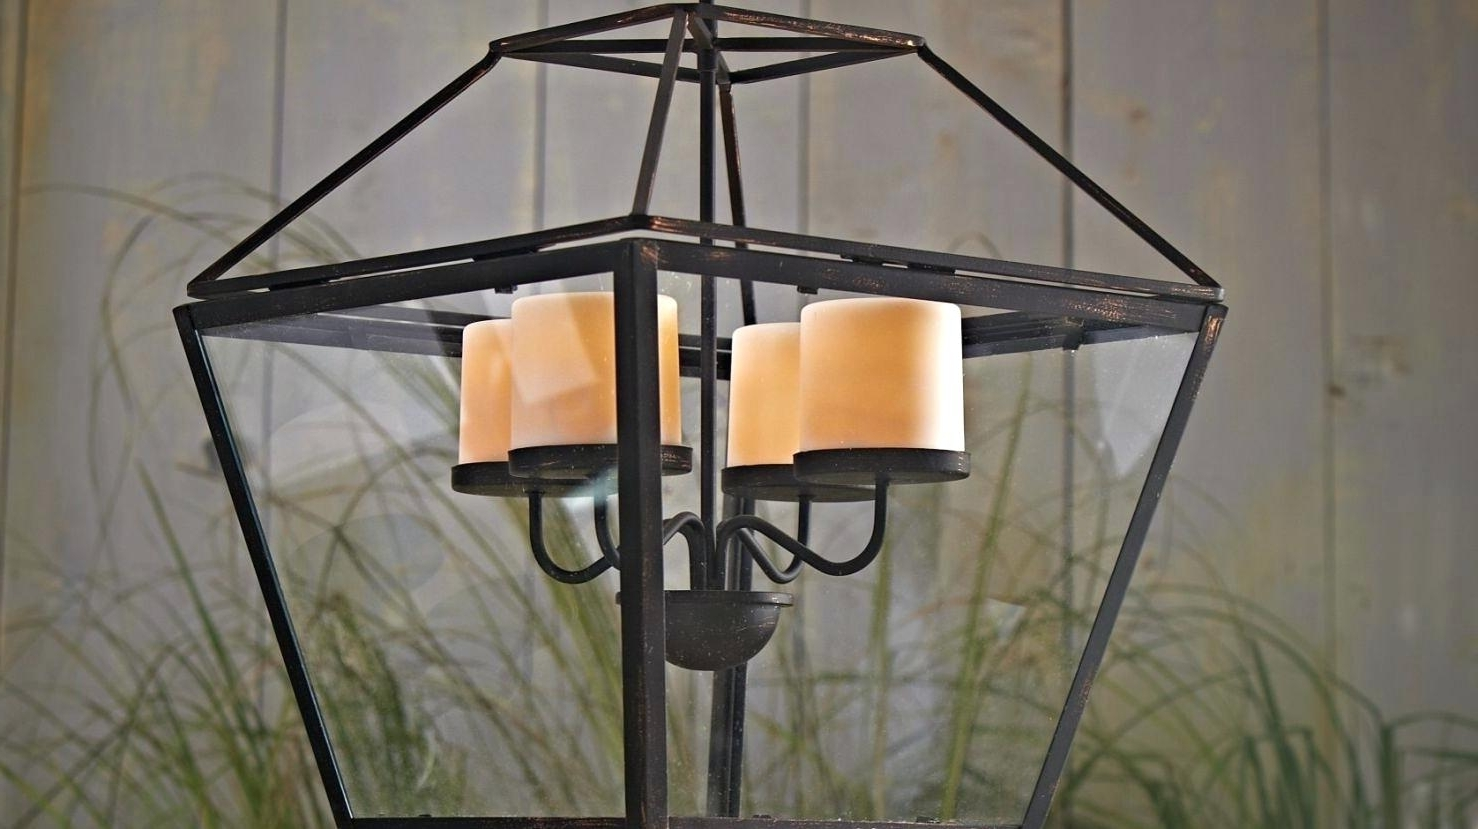 Metal Ball Candle Chandeliers Pertaining To Favorite Candles: Chandelier Parts Candle Covers (View 8 of 20)